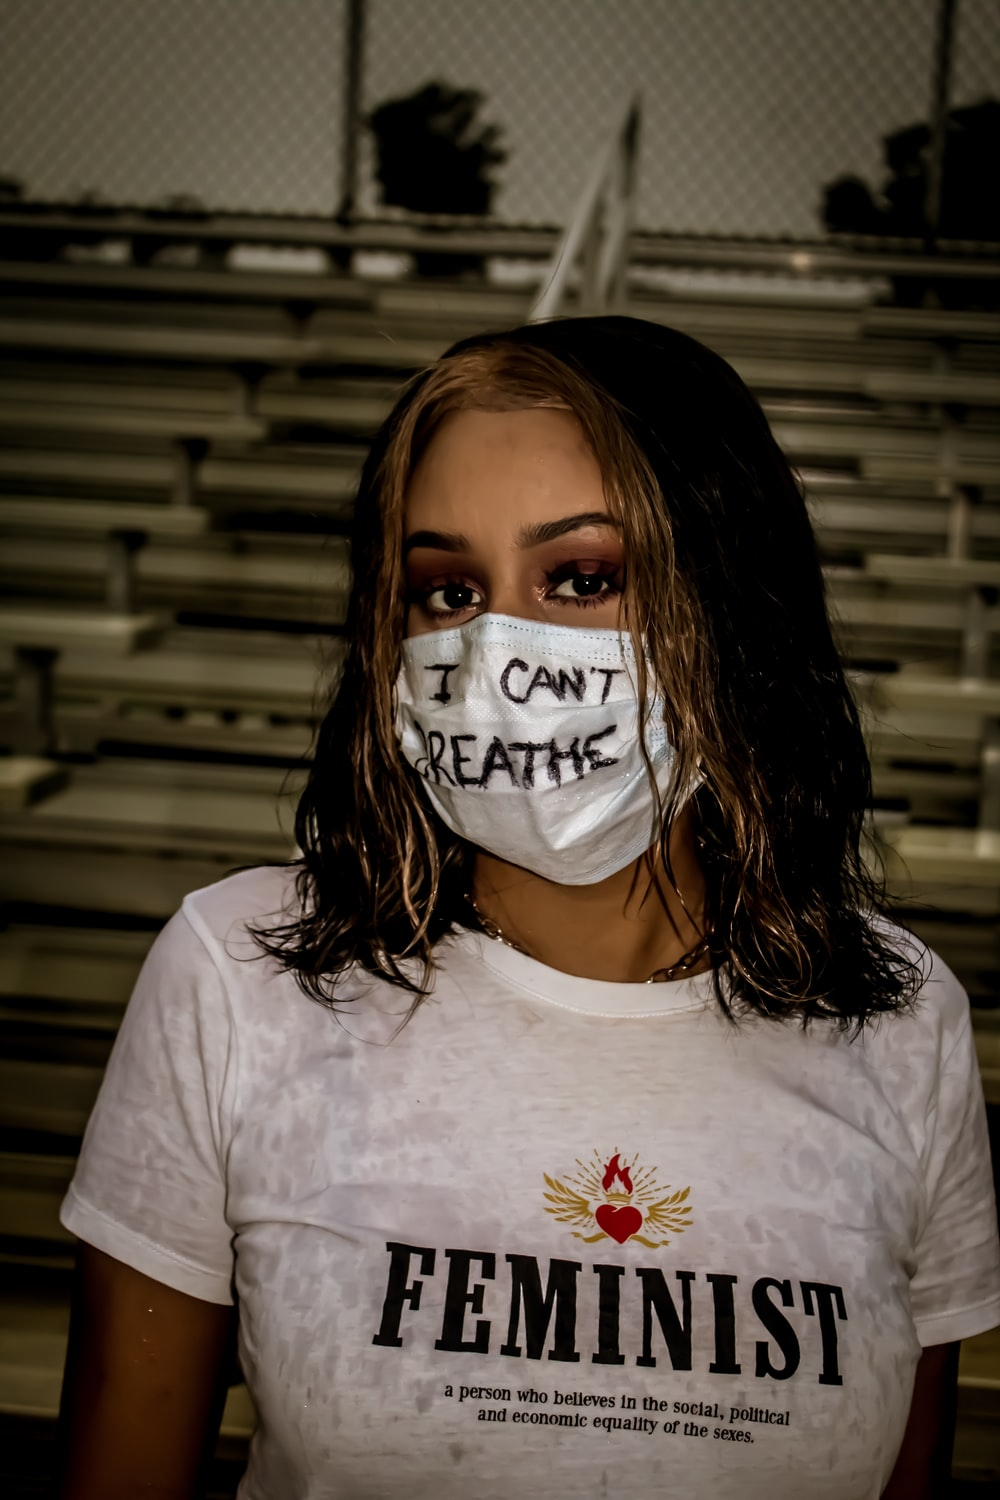 woman in white crew neck t-shirt with white face mask